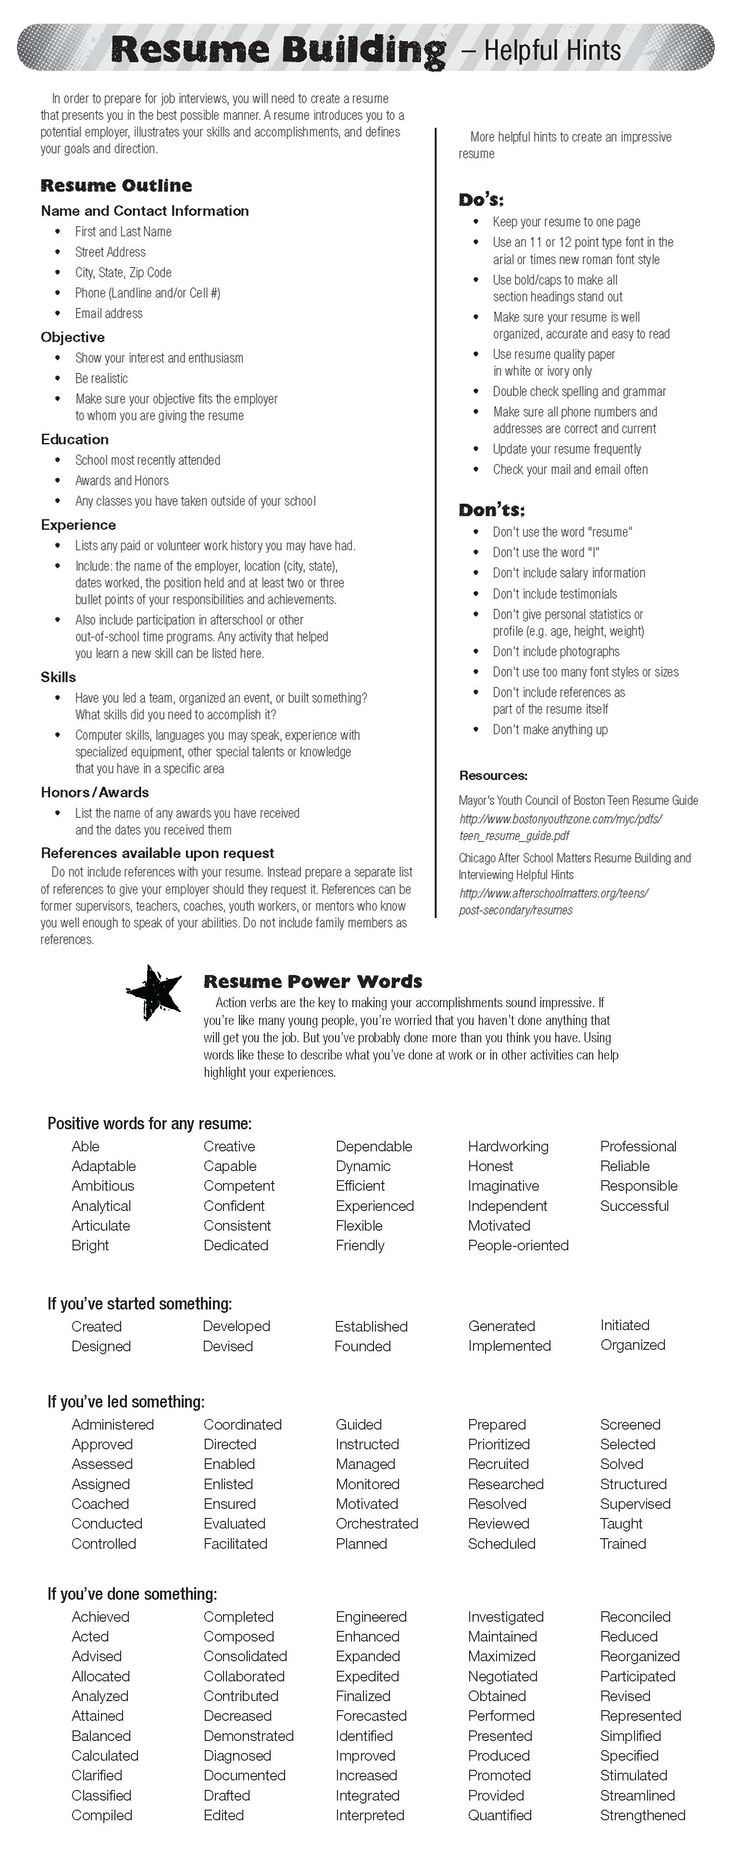 Opposenewapstandardsus  Fascinating  Ideas About Resume On Pinterest  Cv Format Resume Cv And  With Heavenly  Ideas About Resume On Pinterest  Cv Format Resume Cv And Resume Templates With Astonishing Part Time Job Resume Objective Also Write A Great Resume In Addition Personal Assistant Resumes And Professional Memberships On Resume As Well As Samples Of Customer Service Resumes Additionally What To Include On Your Resume From Pinterestcom With Opposenewapstandardsus  Heavenly  Ideas About Resume On Pinterest  Cv Format Resume Cv And  With Astonishing  Ideas About Resume On Pinterest  Cv Format Resume Cv And Resume Templates And Fascinating Part Time Job Resume Objective Also Write A Great Resume In Addition Personal Assistant Resumes From Pinterestcom